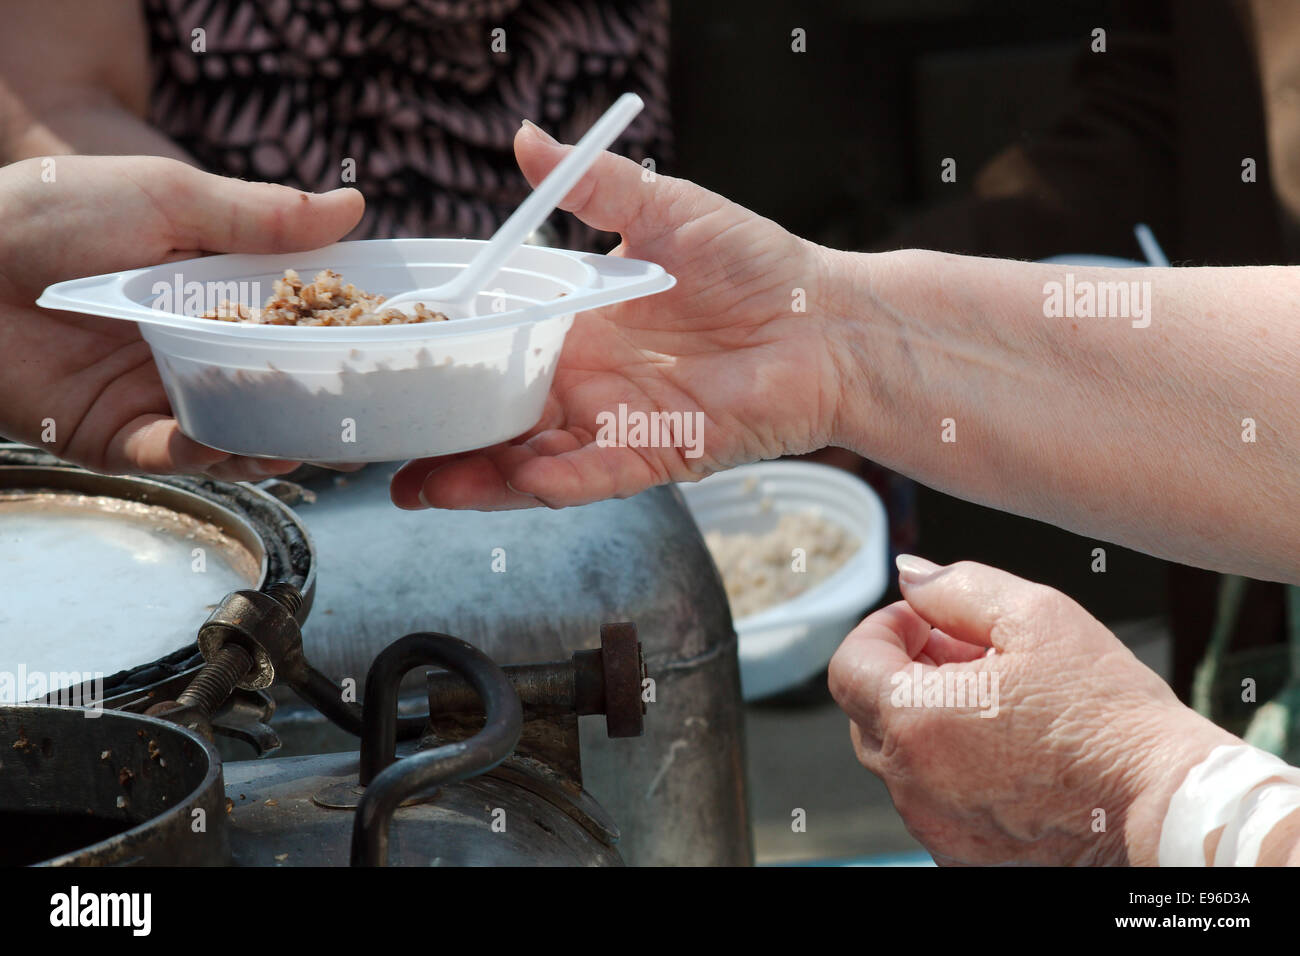 Charitable distribution of meal - Stock Image